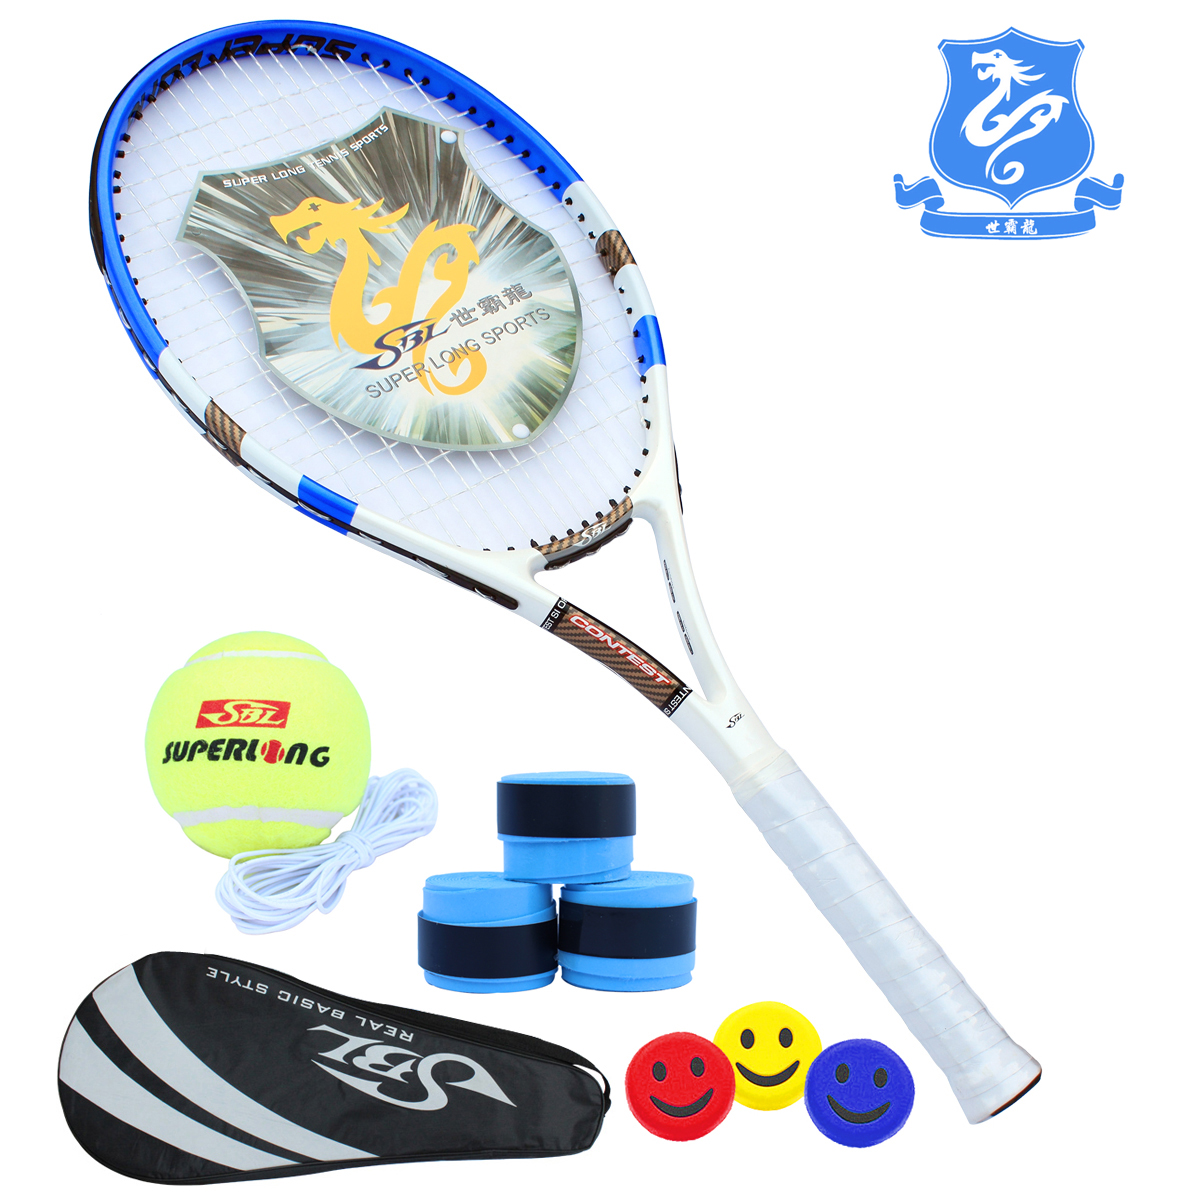 E-mail sent eight Taiwan with a genuine security balong advanced carbon composite tennis racket just start training special